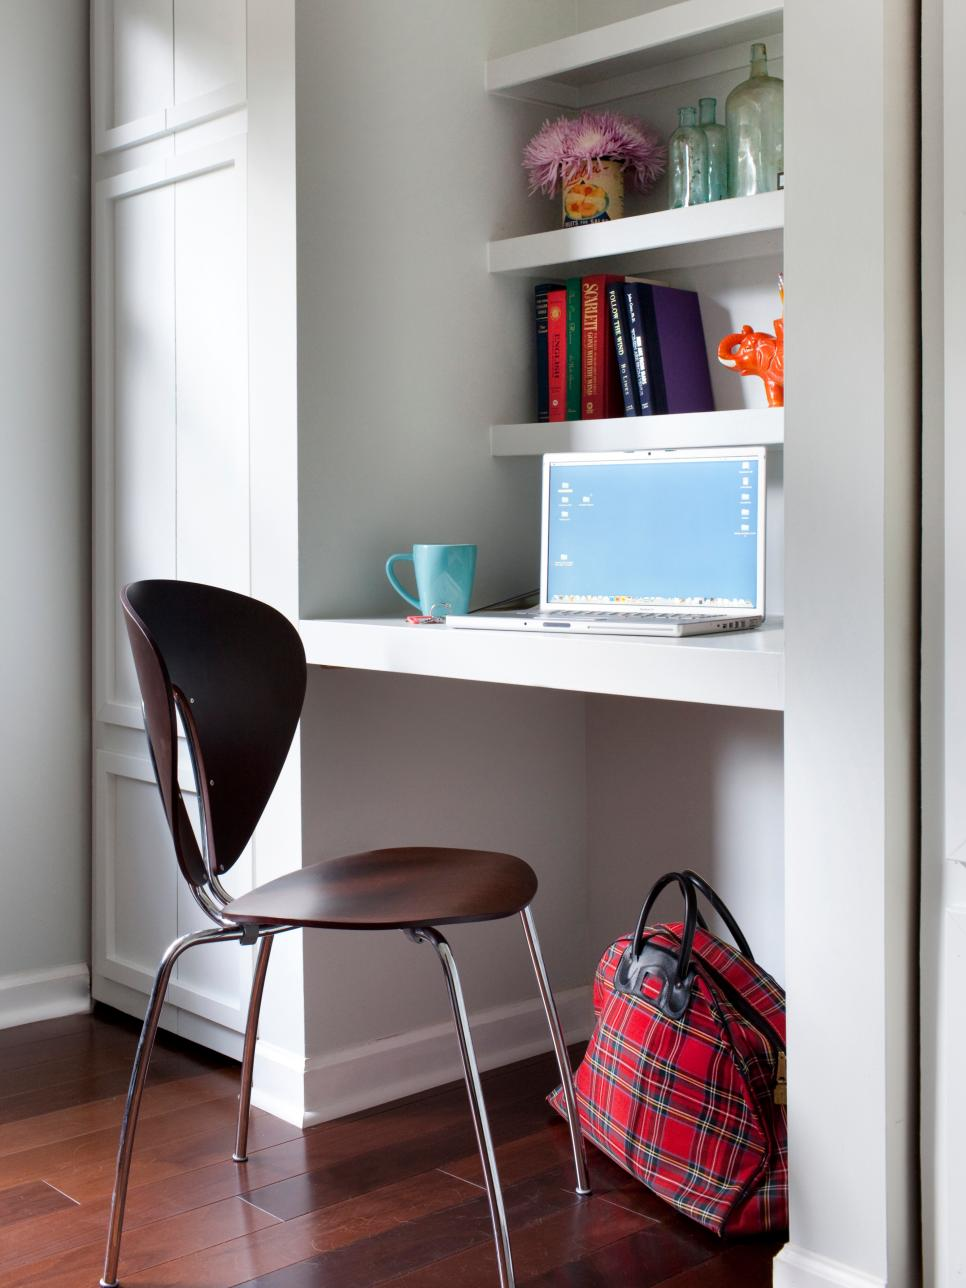 good interior design for home.  10 Smart Design Ideas for Small Spaces HGTV